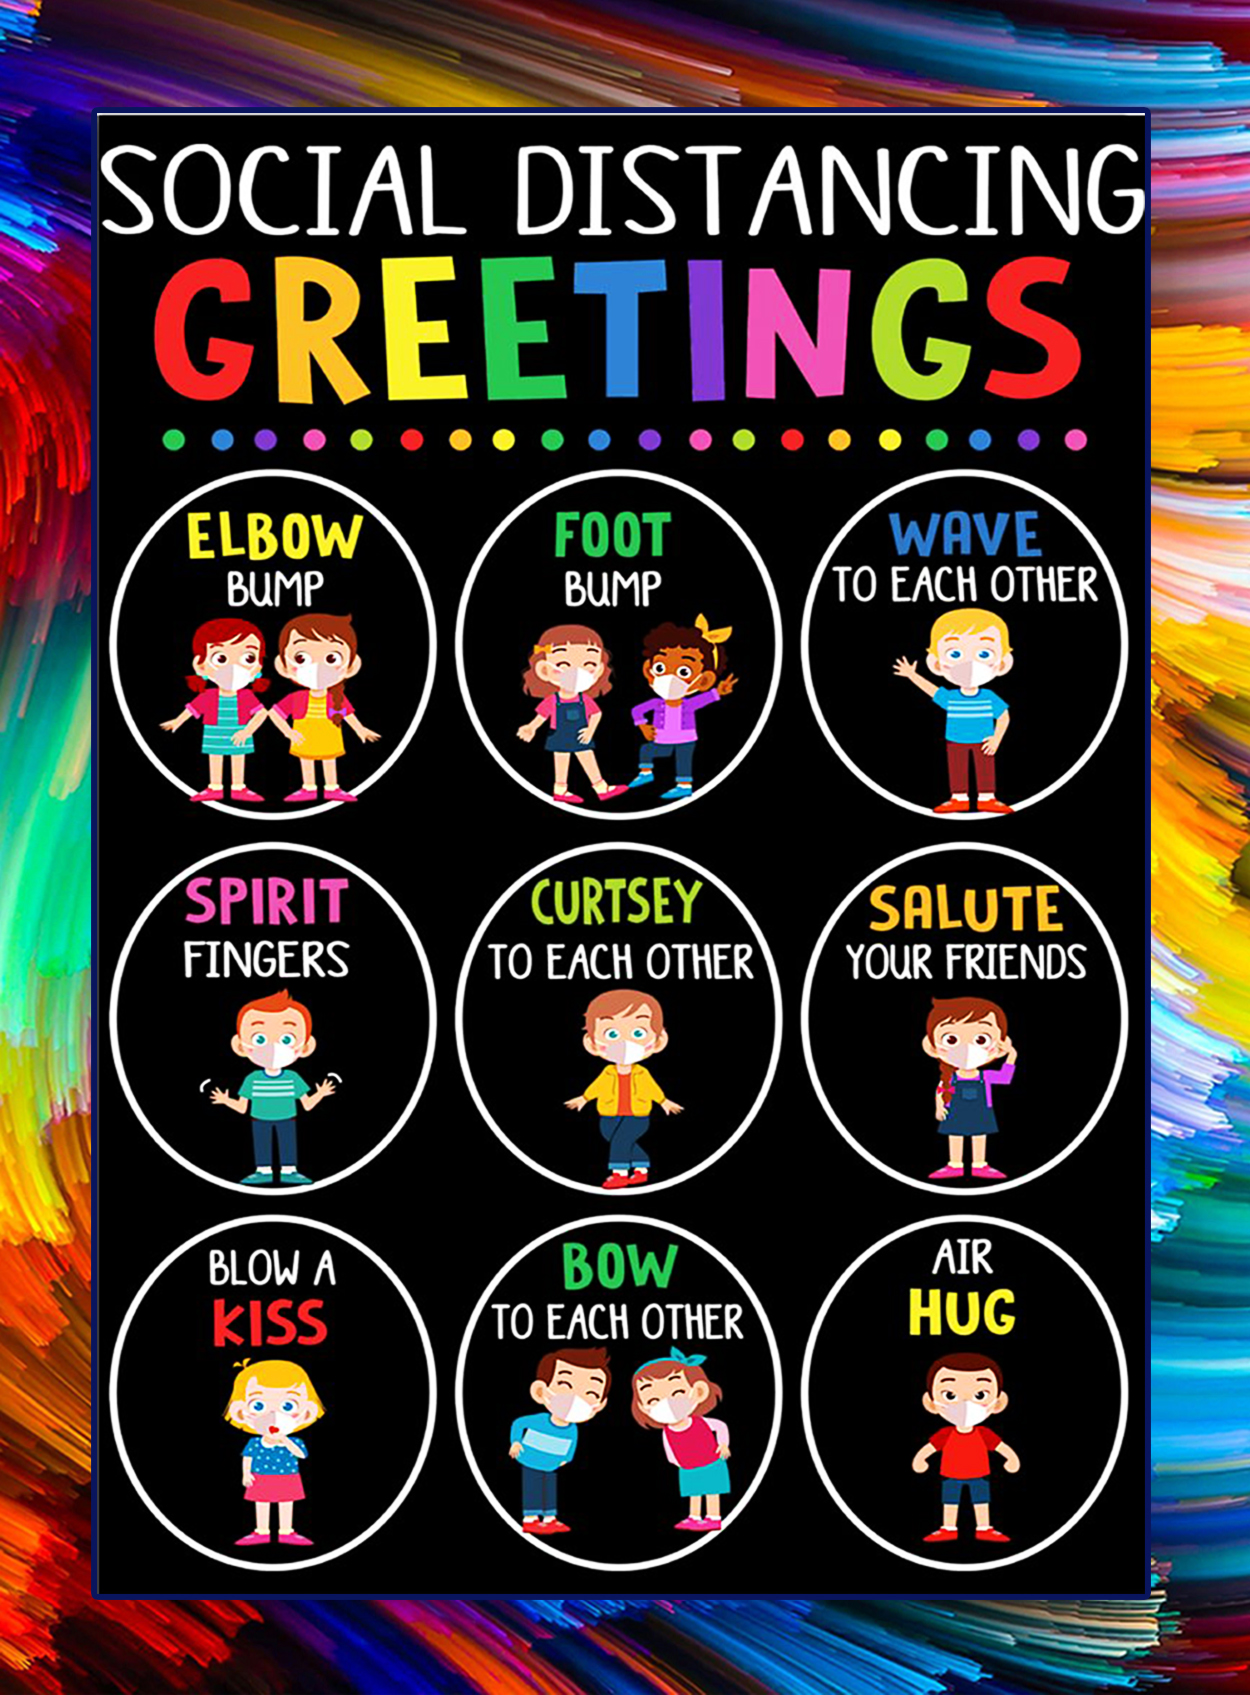 Social distancing greetings classroom poster - A2